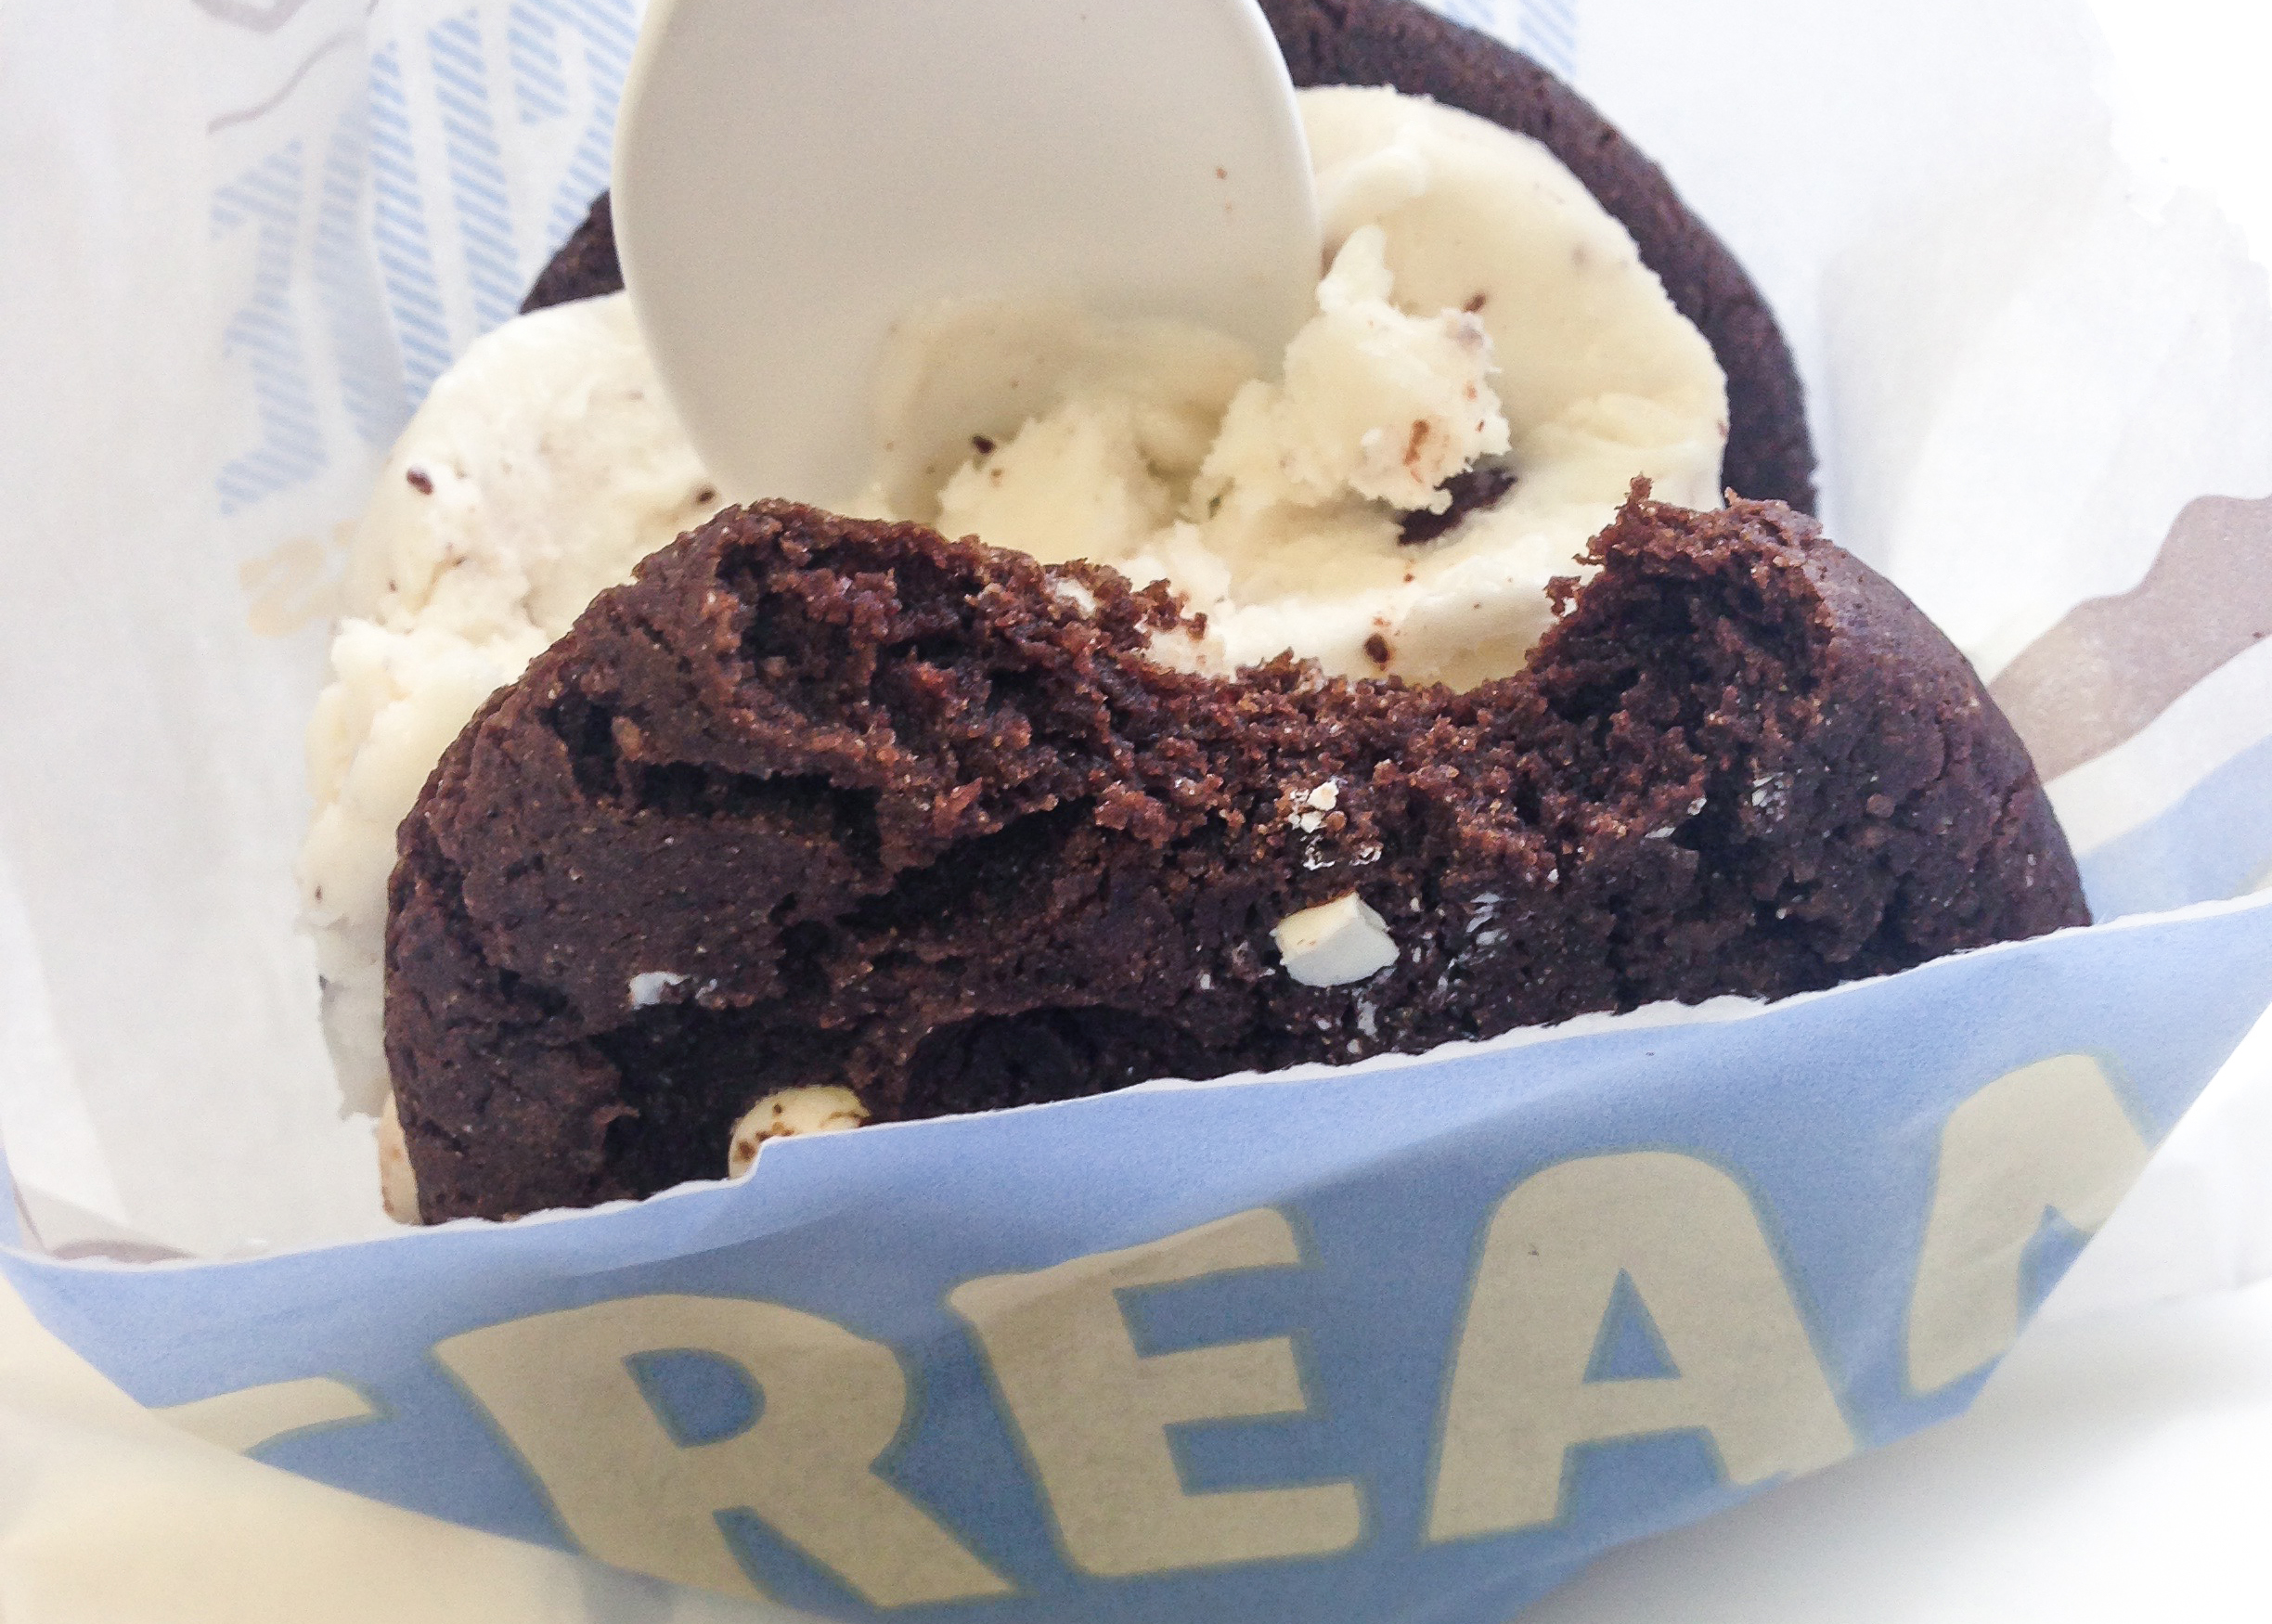 cream makes made to order icecream sandwiches in the mission district san francisco with vegan and gluten free options